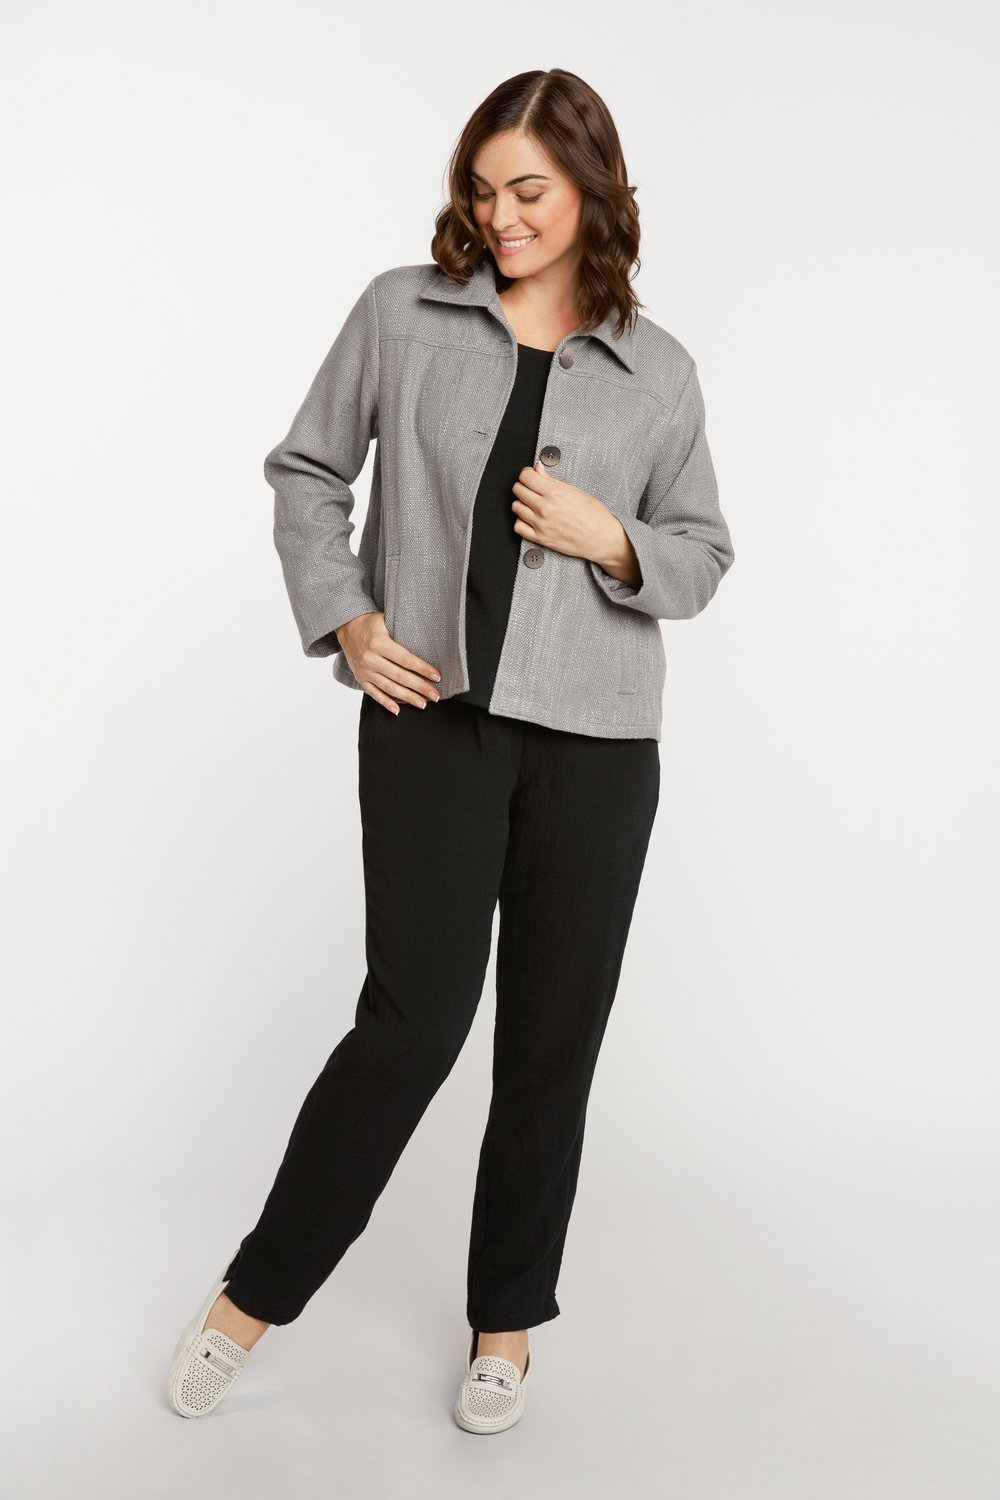 AA8144 - Kimberly Jacket SG27 - Grey